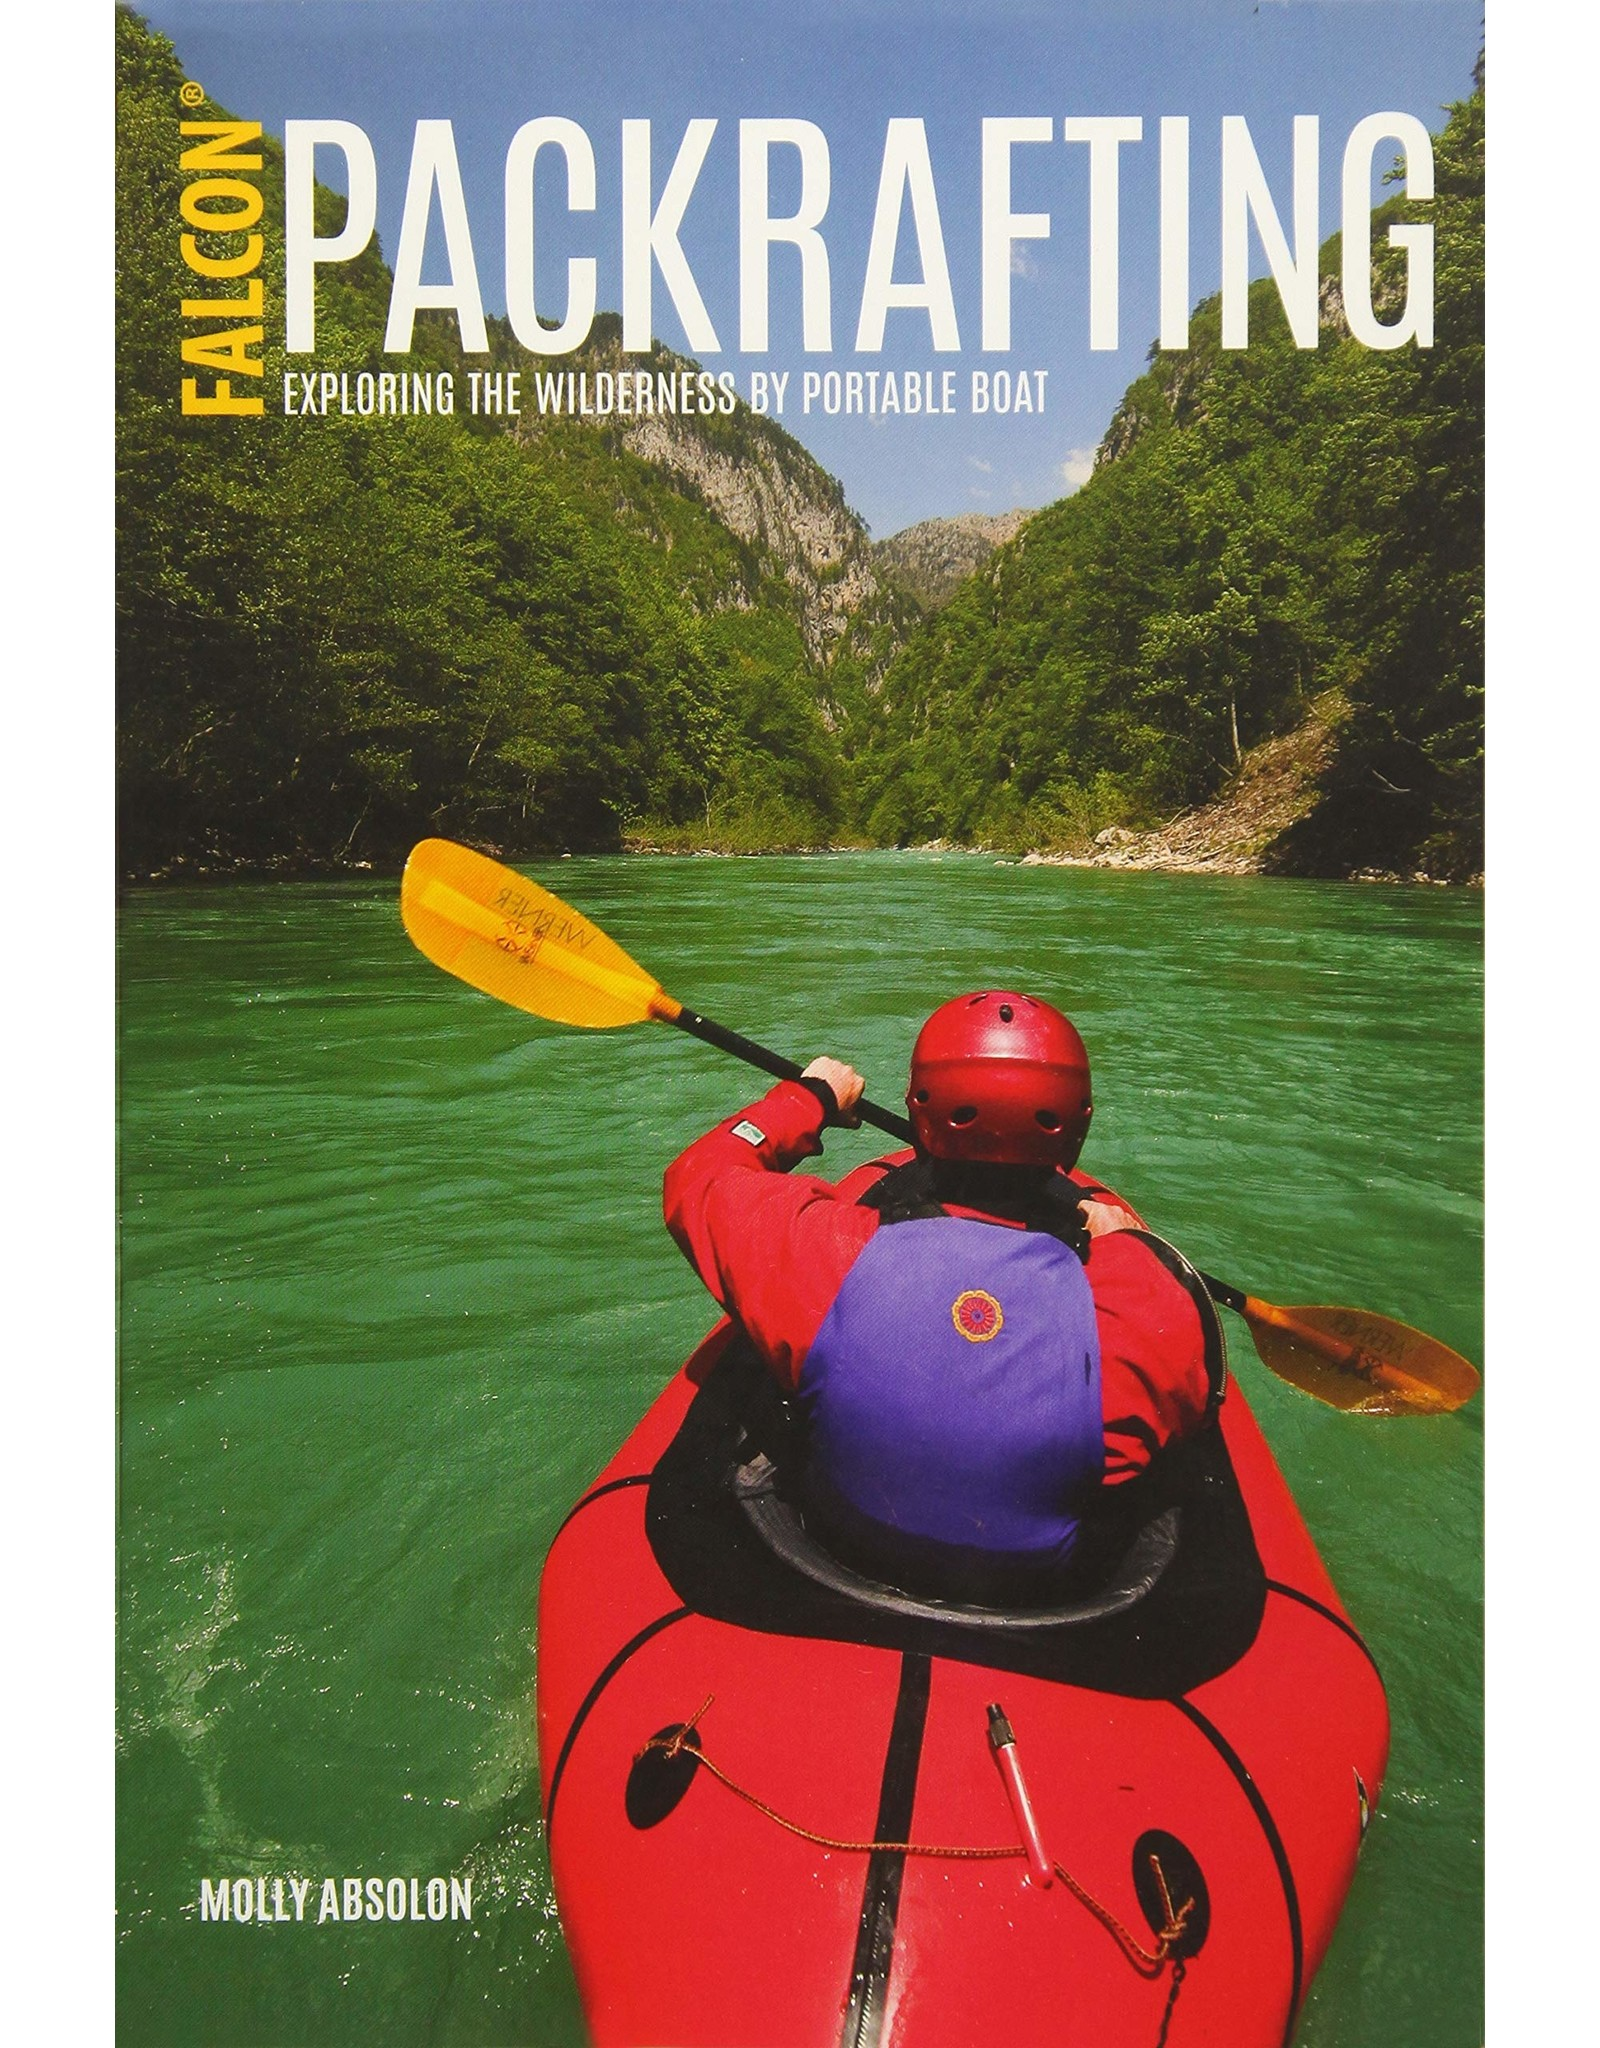 NATIONAL BOOK NETWRK Packrafting: Exploring the Wilderness by Portable Boat Paperback – Illustrated